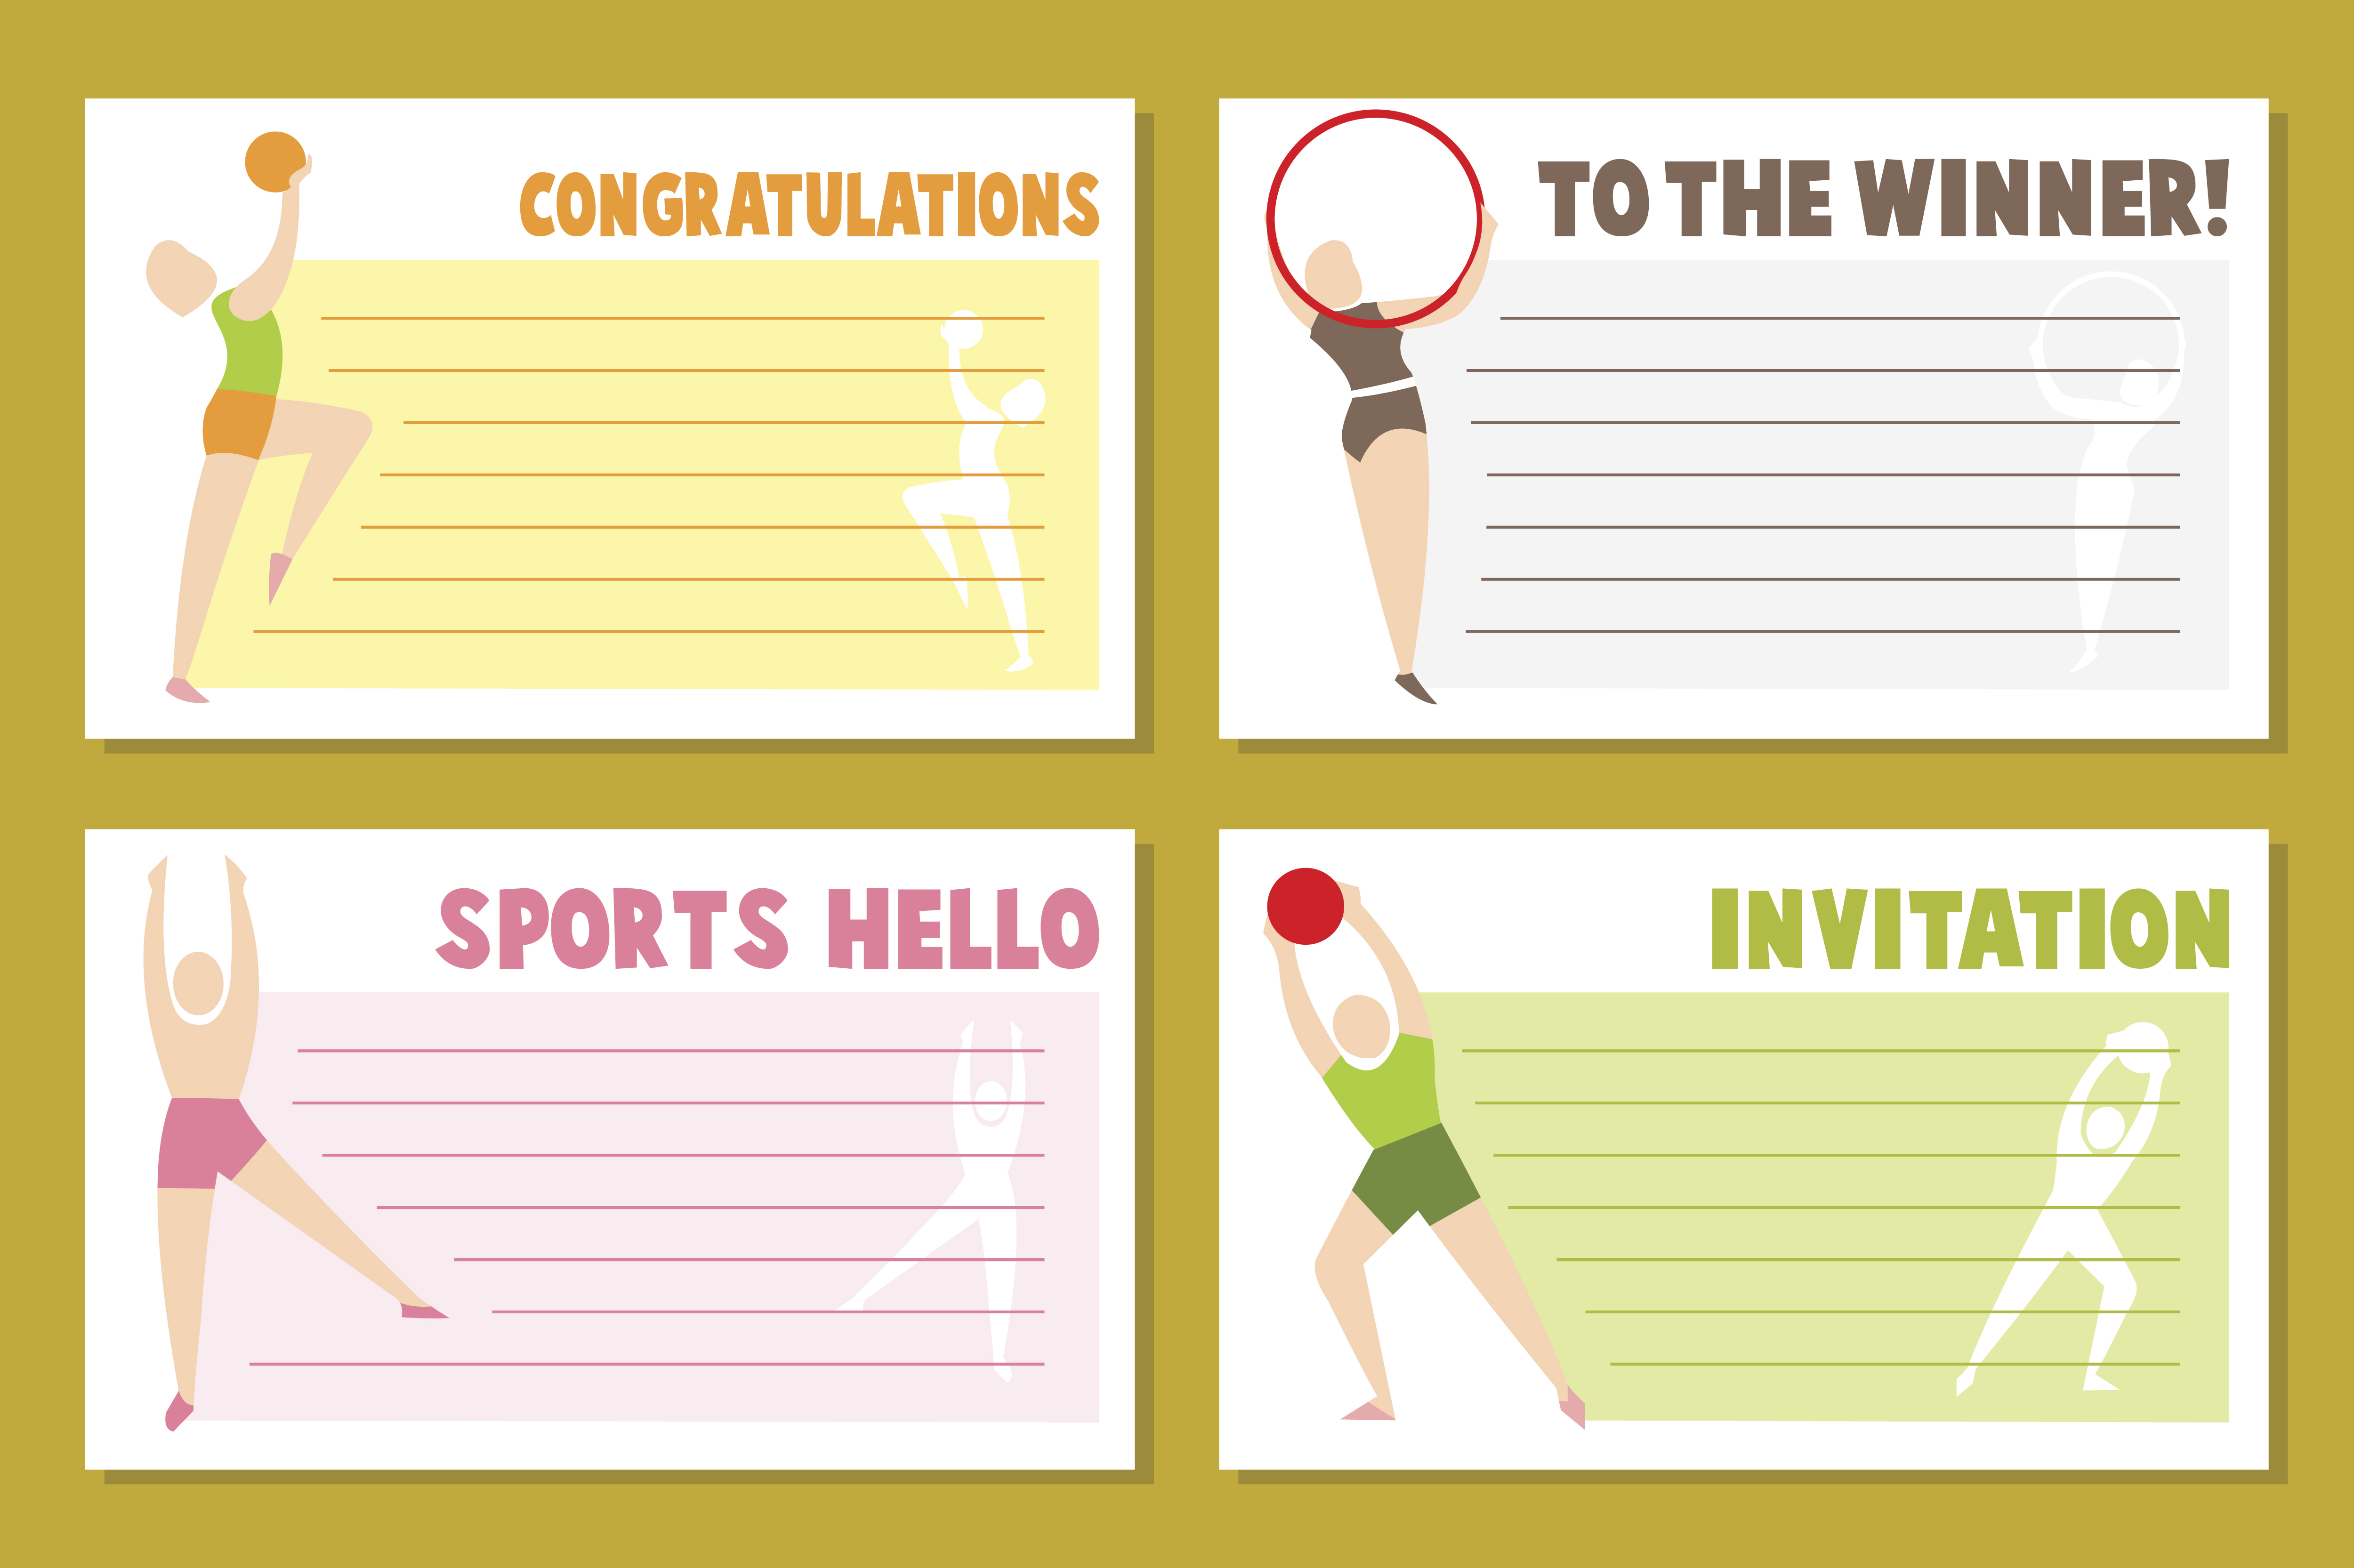 Download Free Bbanner Template Design For Sport Event Graphic By Woplolqow for Cricut Explore, Silhouette and other cutting machines.